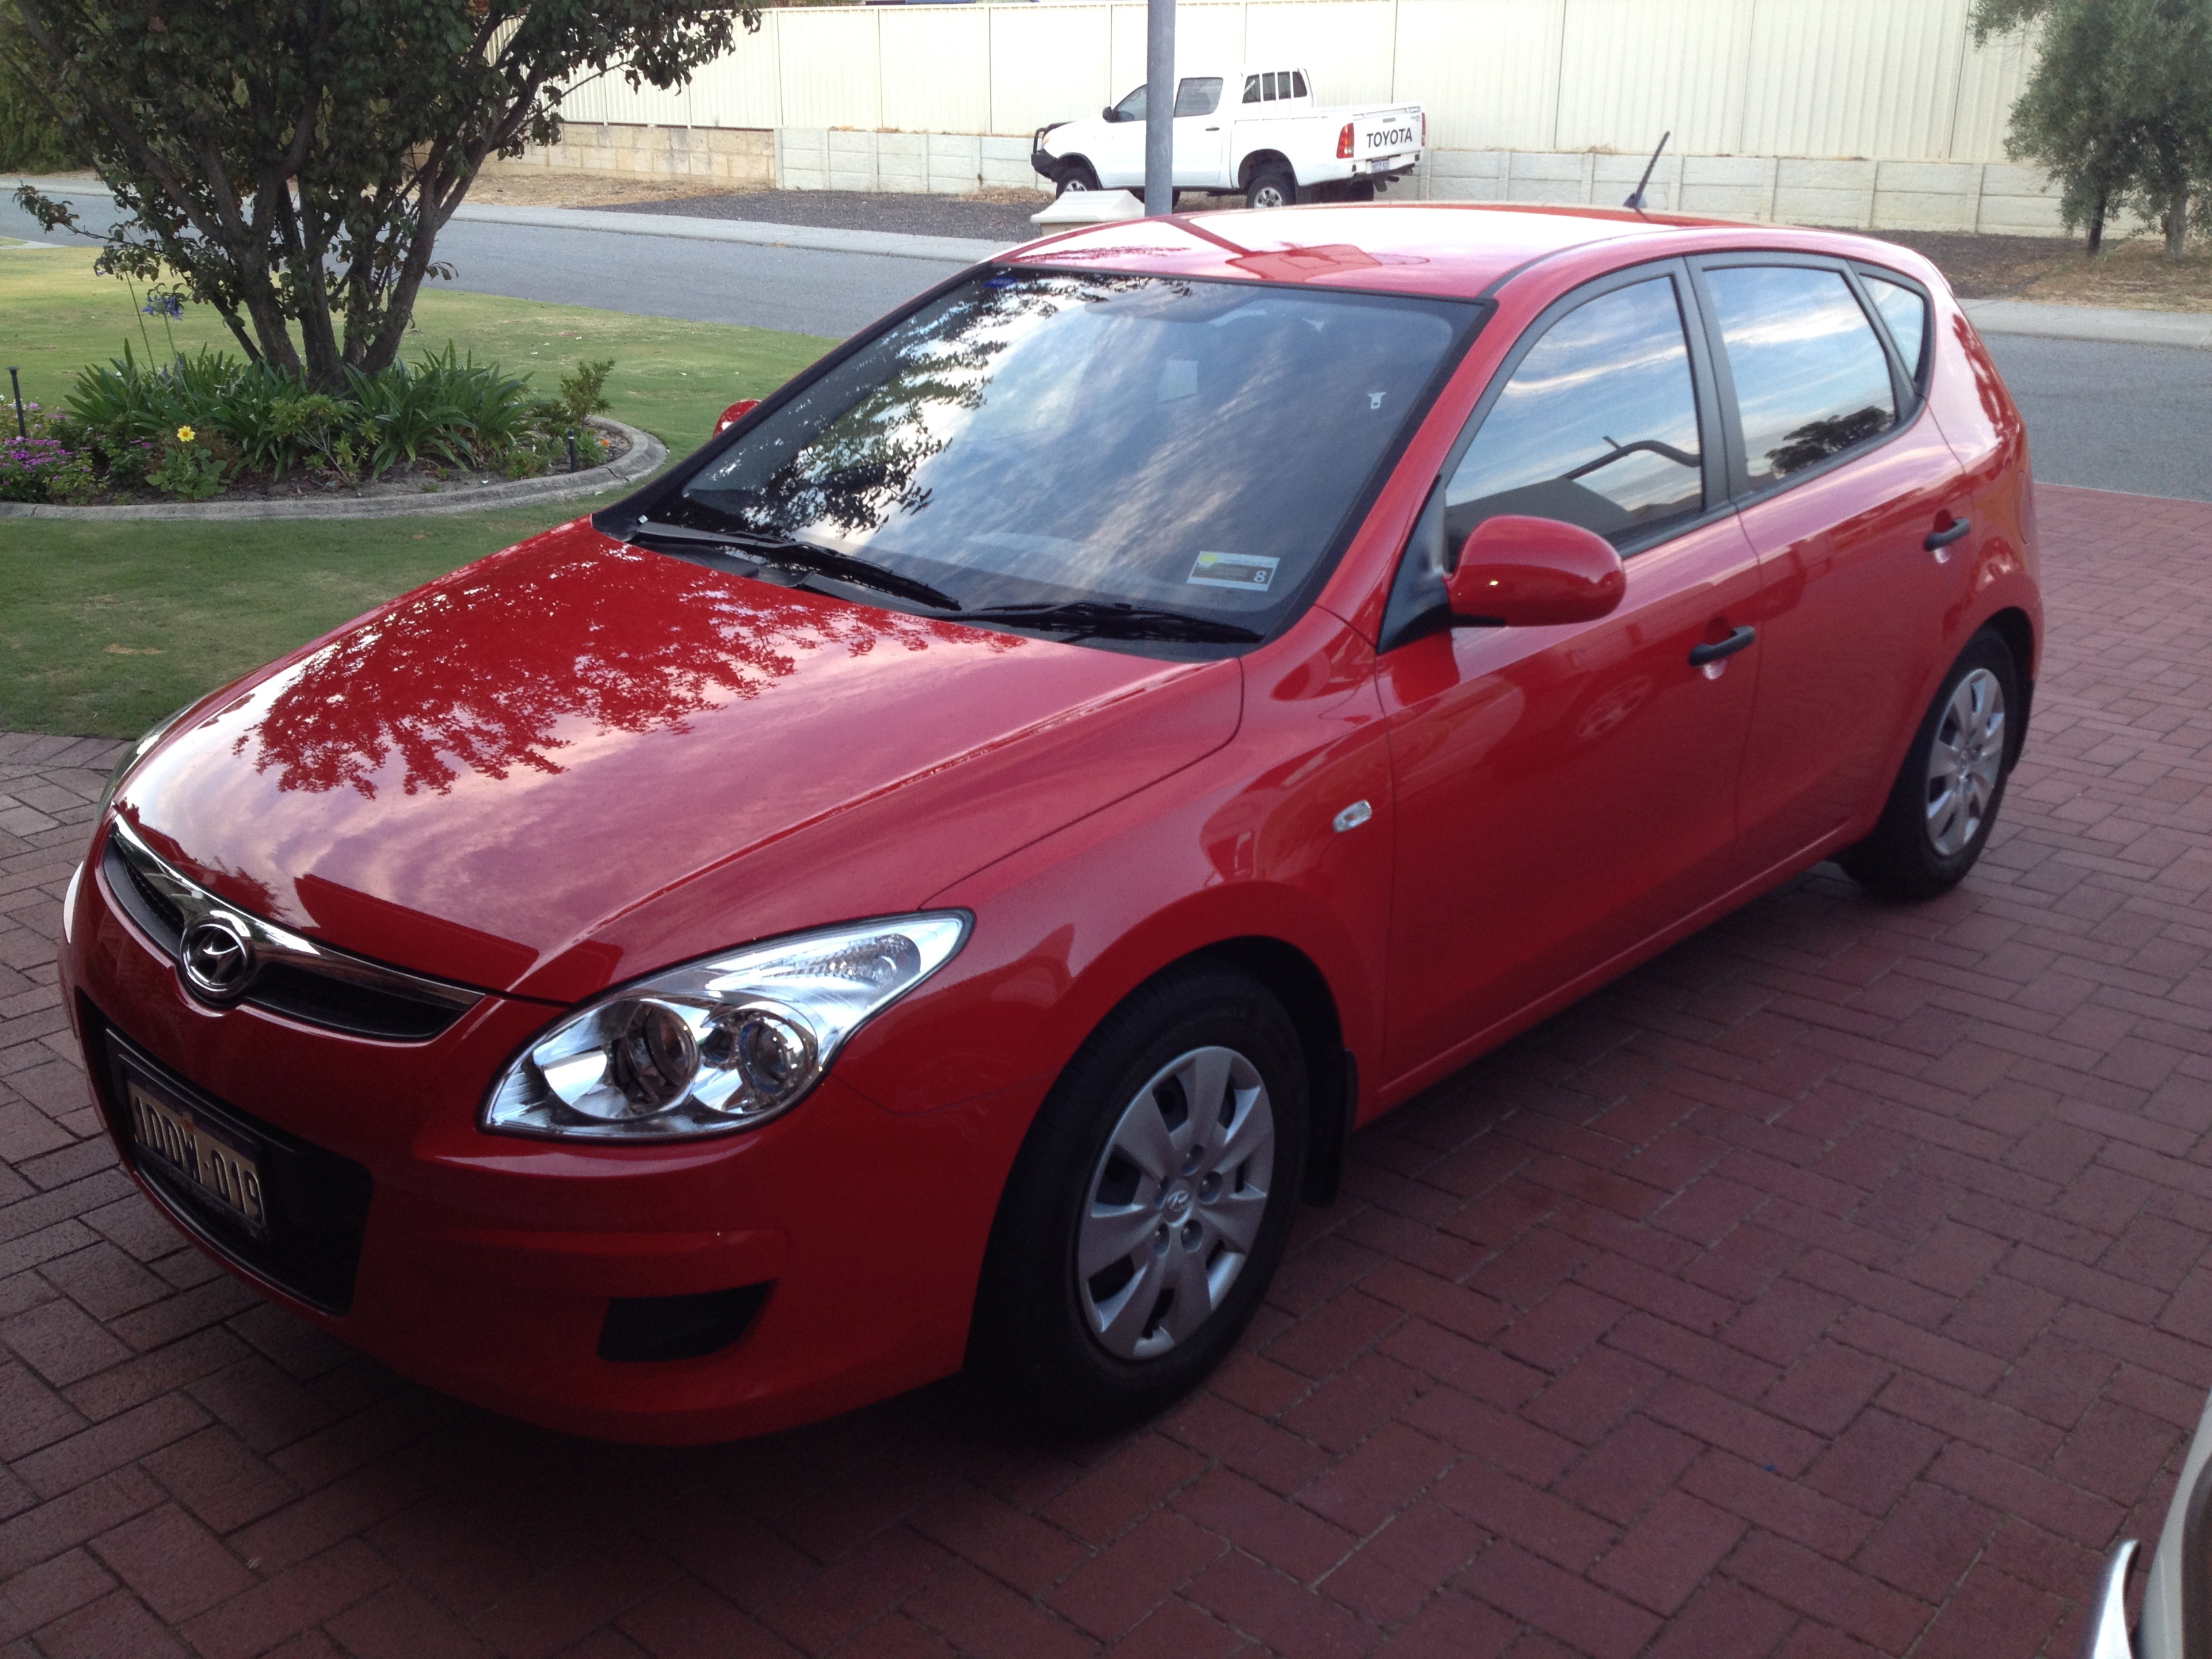 2009 hyundai i30 cw sx 1 6 crdi fd my09 car sales wa perth 2421806. Black Bedroom Furniture Sets. Home Design Ideas